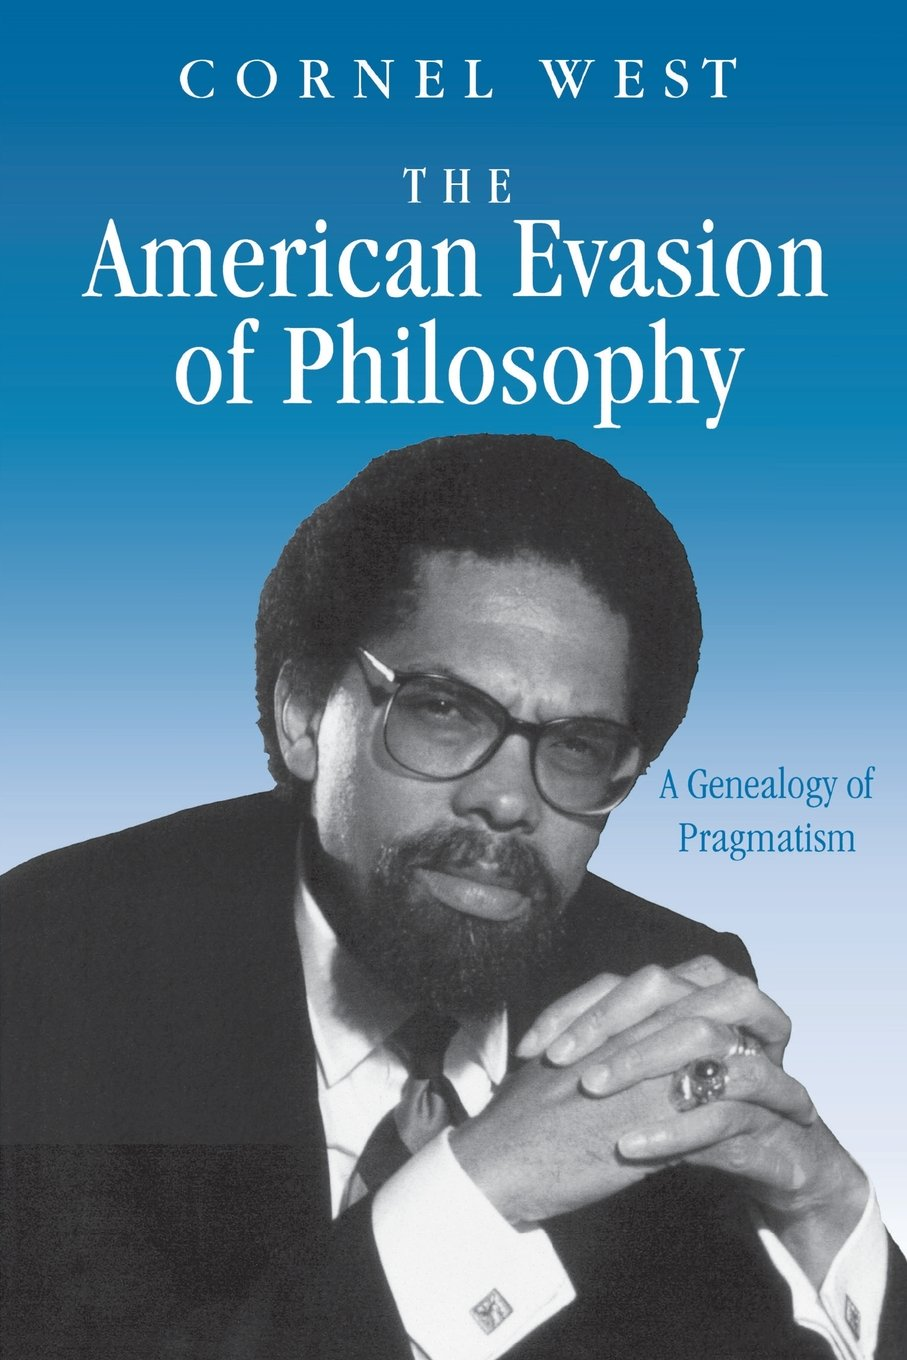 The American Evasion of Philosophy: A Genealogy of Pragmatism by Cornel West